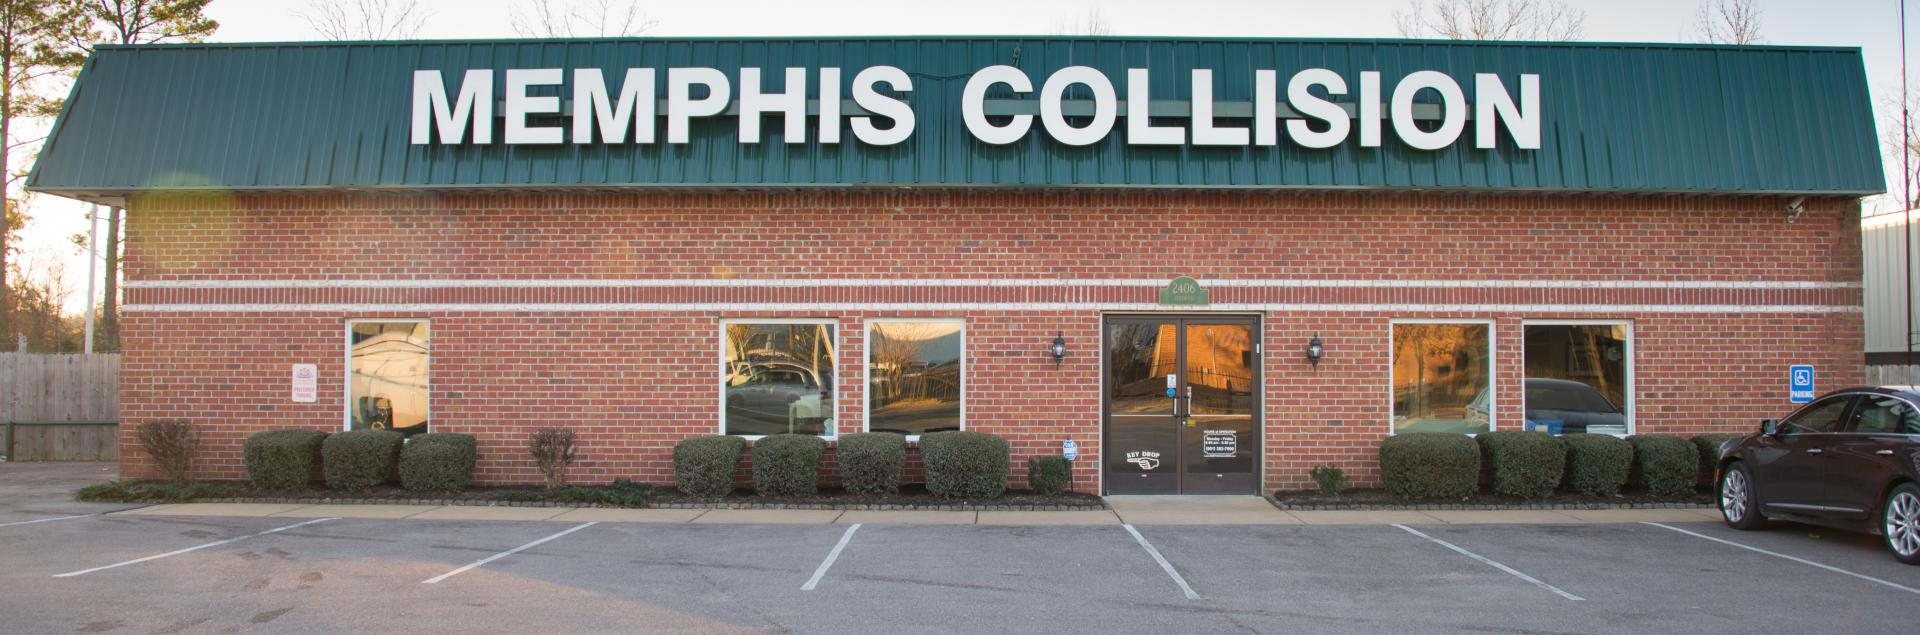 <h2 style='color:#FFFFFF !important;                                              '>Memphis Collision</h2>                                             <span class='slideDesc'>Quality Collision Repair Since 1997</span>                                                                                           <div class='responsiveSliderButton'><a style='text-decoration: none;'                                              href='tel:9013827000'>Call Us Now!</a></div>